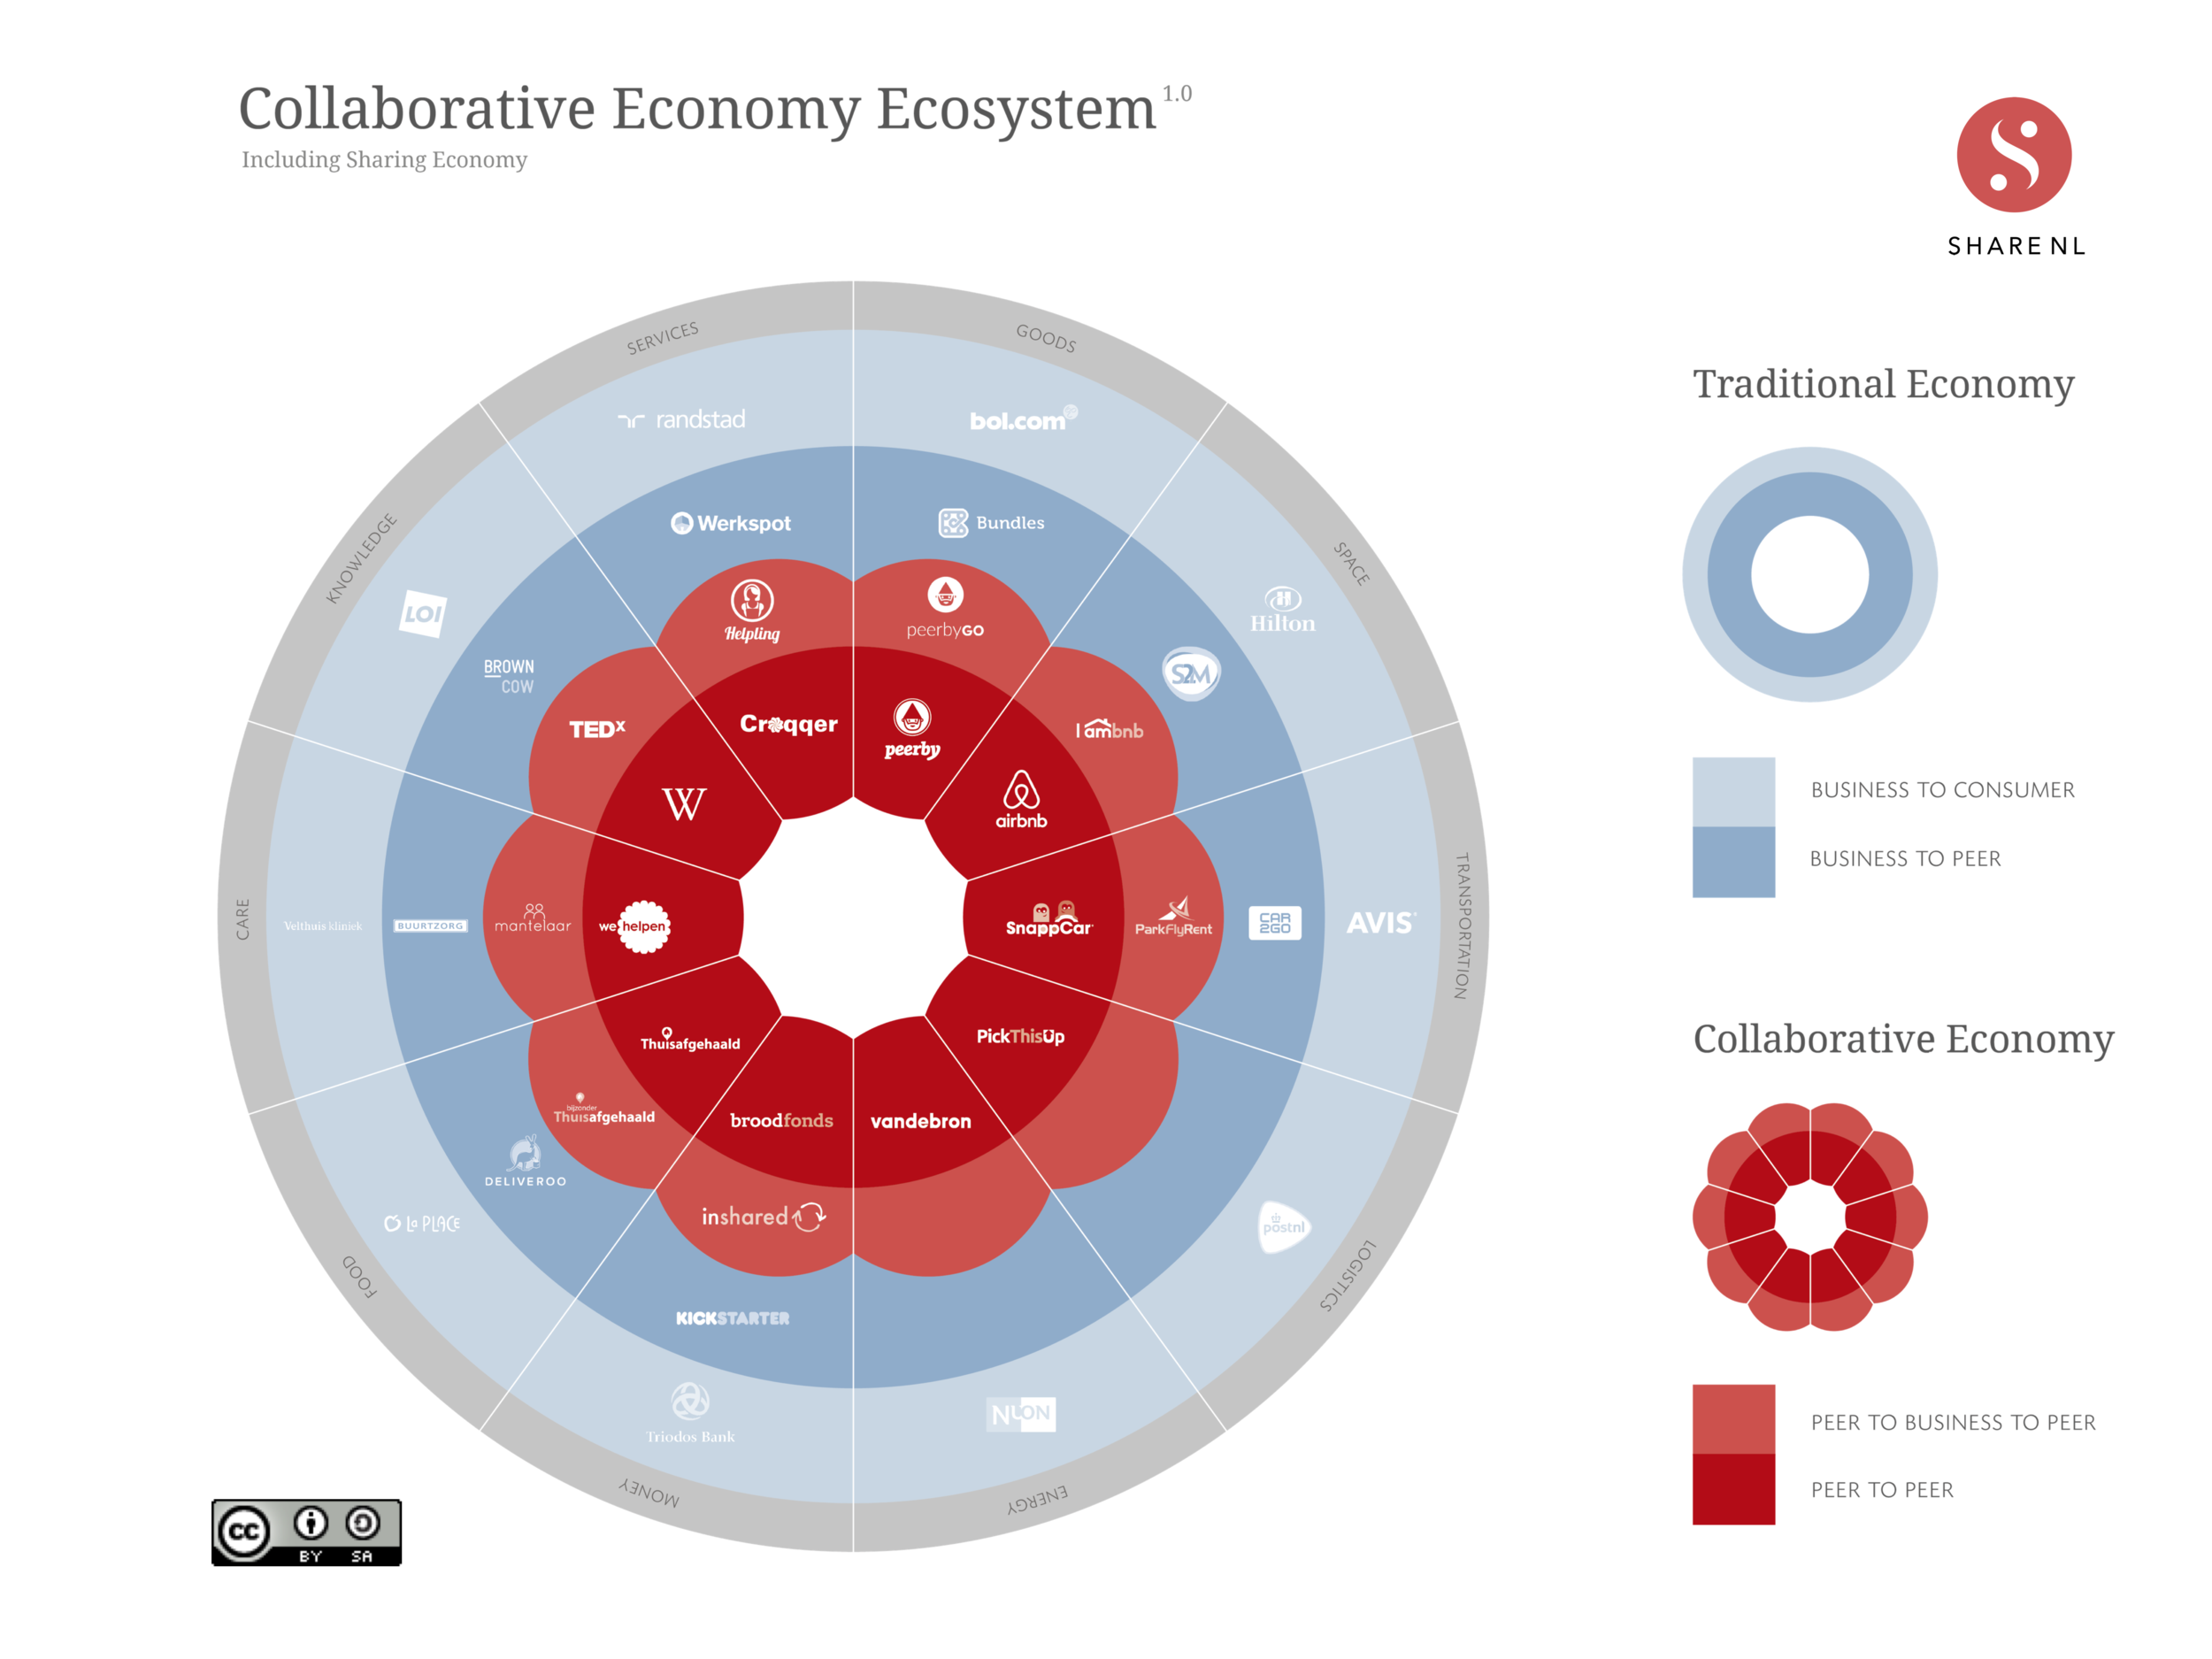 Collaborative economy ecosystem by shareNL can be reused, tweaked and shared under the   CC BY-SA 4.0 license  .